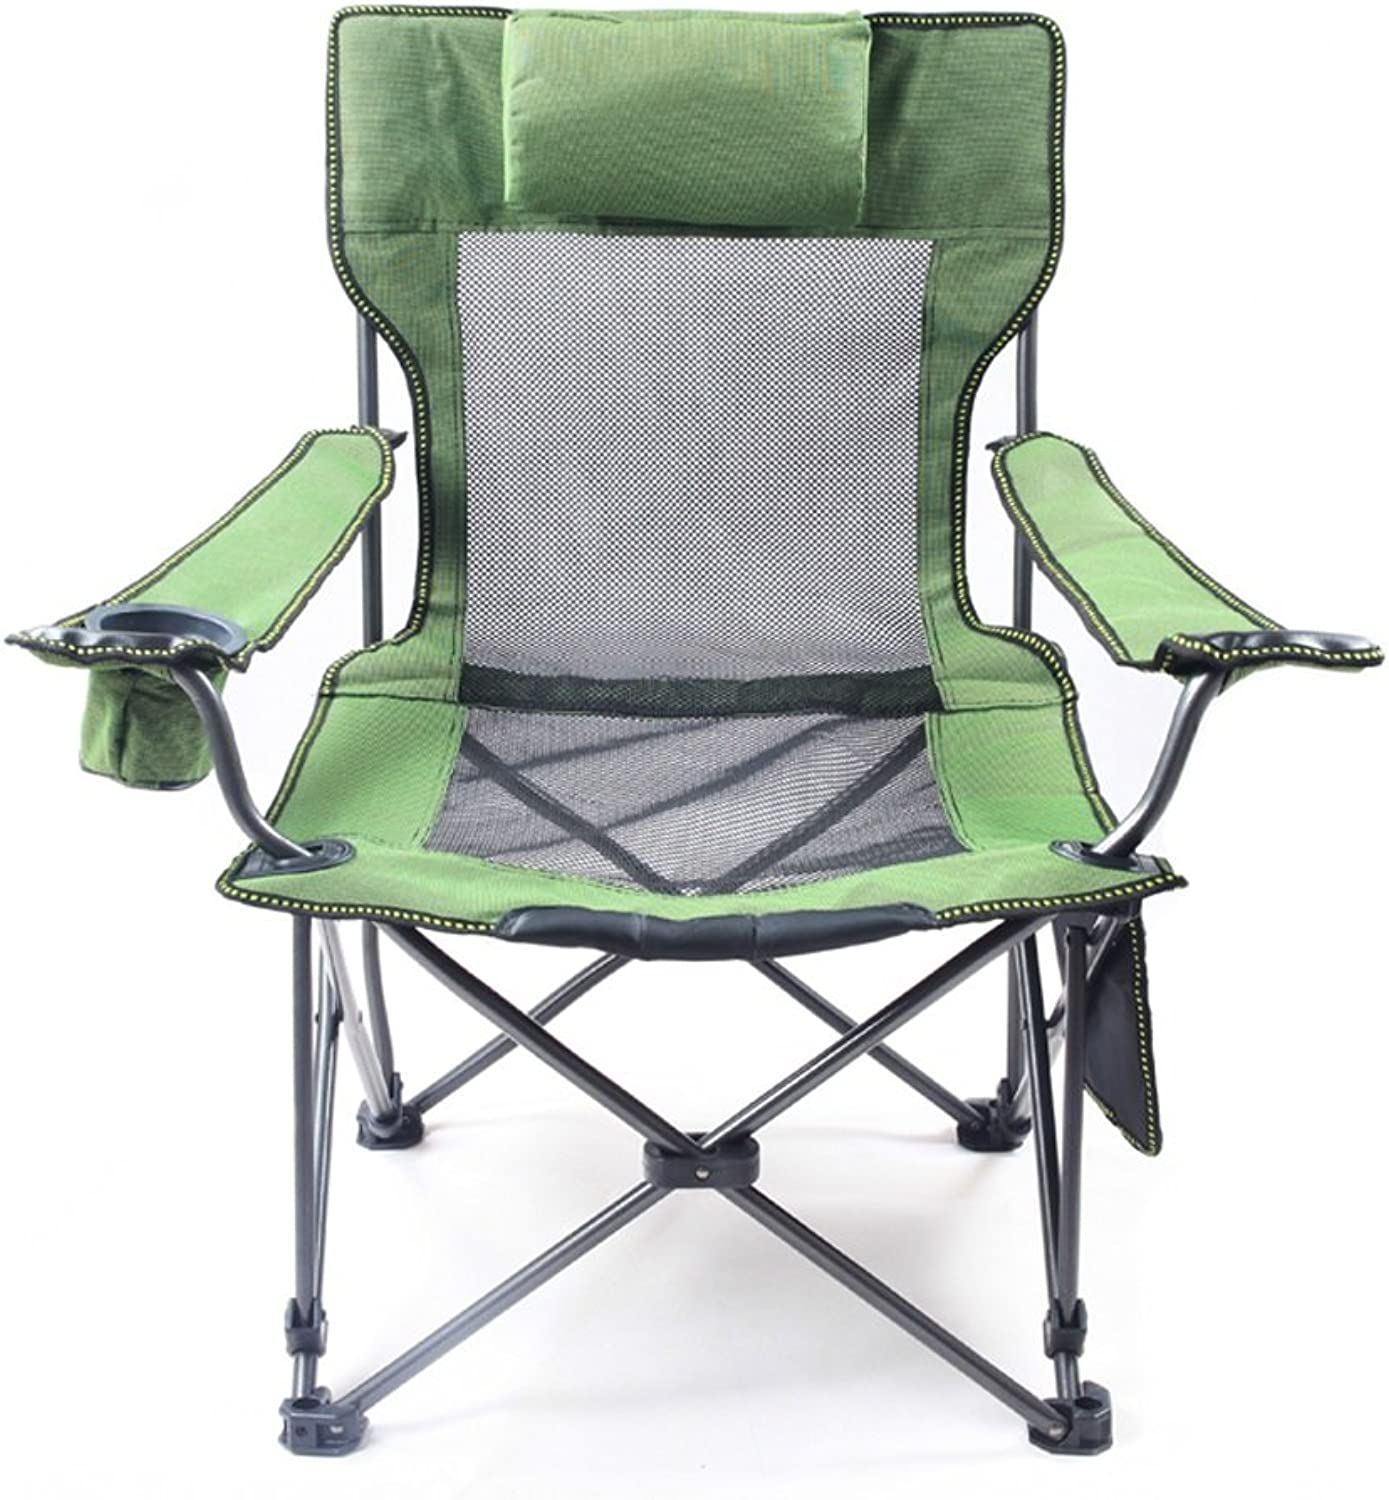 KTYXGKL Outdoor Sitting Double Folding Chair Fishing Chair Adjustable Recliner Portable Beach Chair Lunch Break Chair Folding Chair (color   Black)